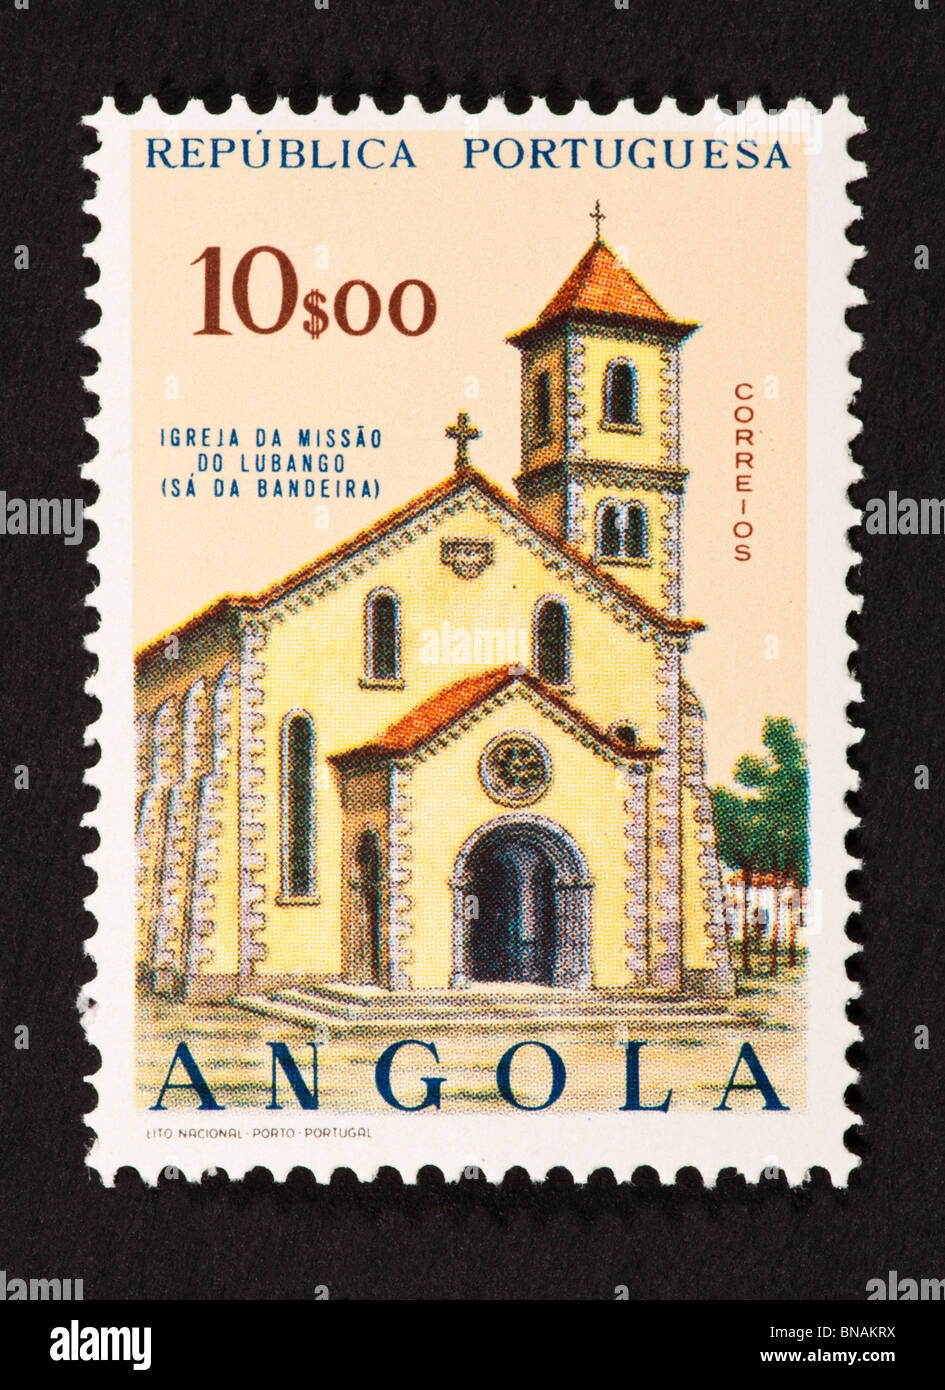 Postage stamp from Angola depicting the Lubango Mission. - Stock Image